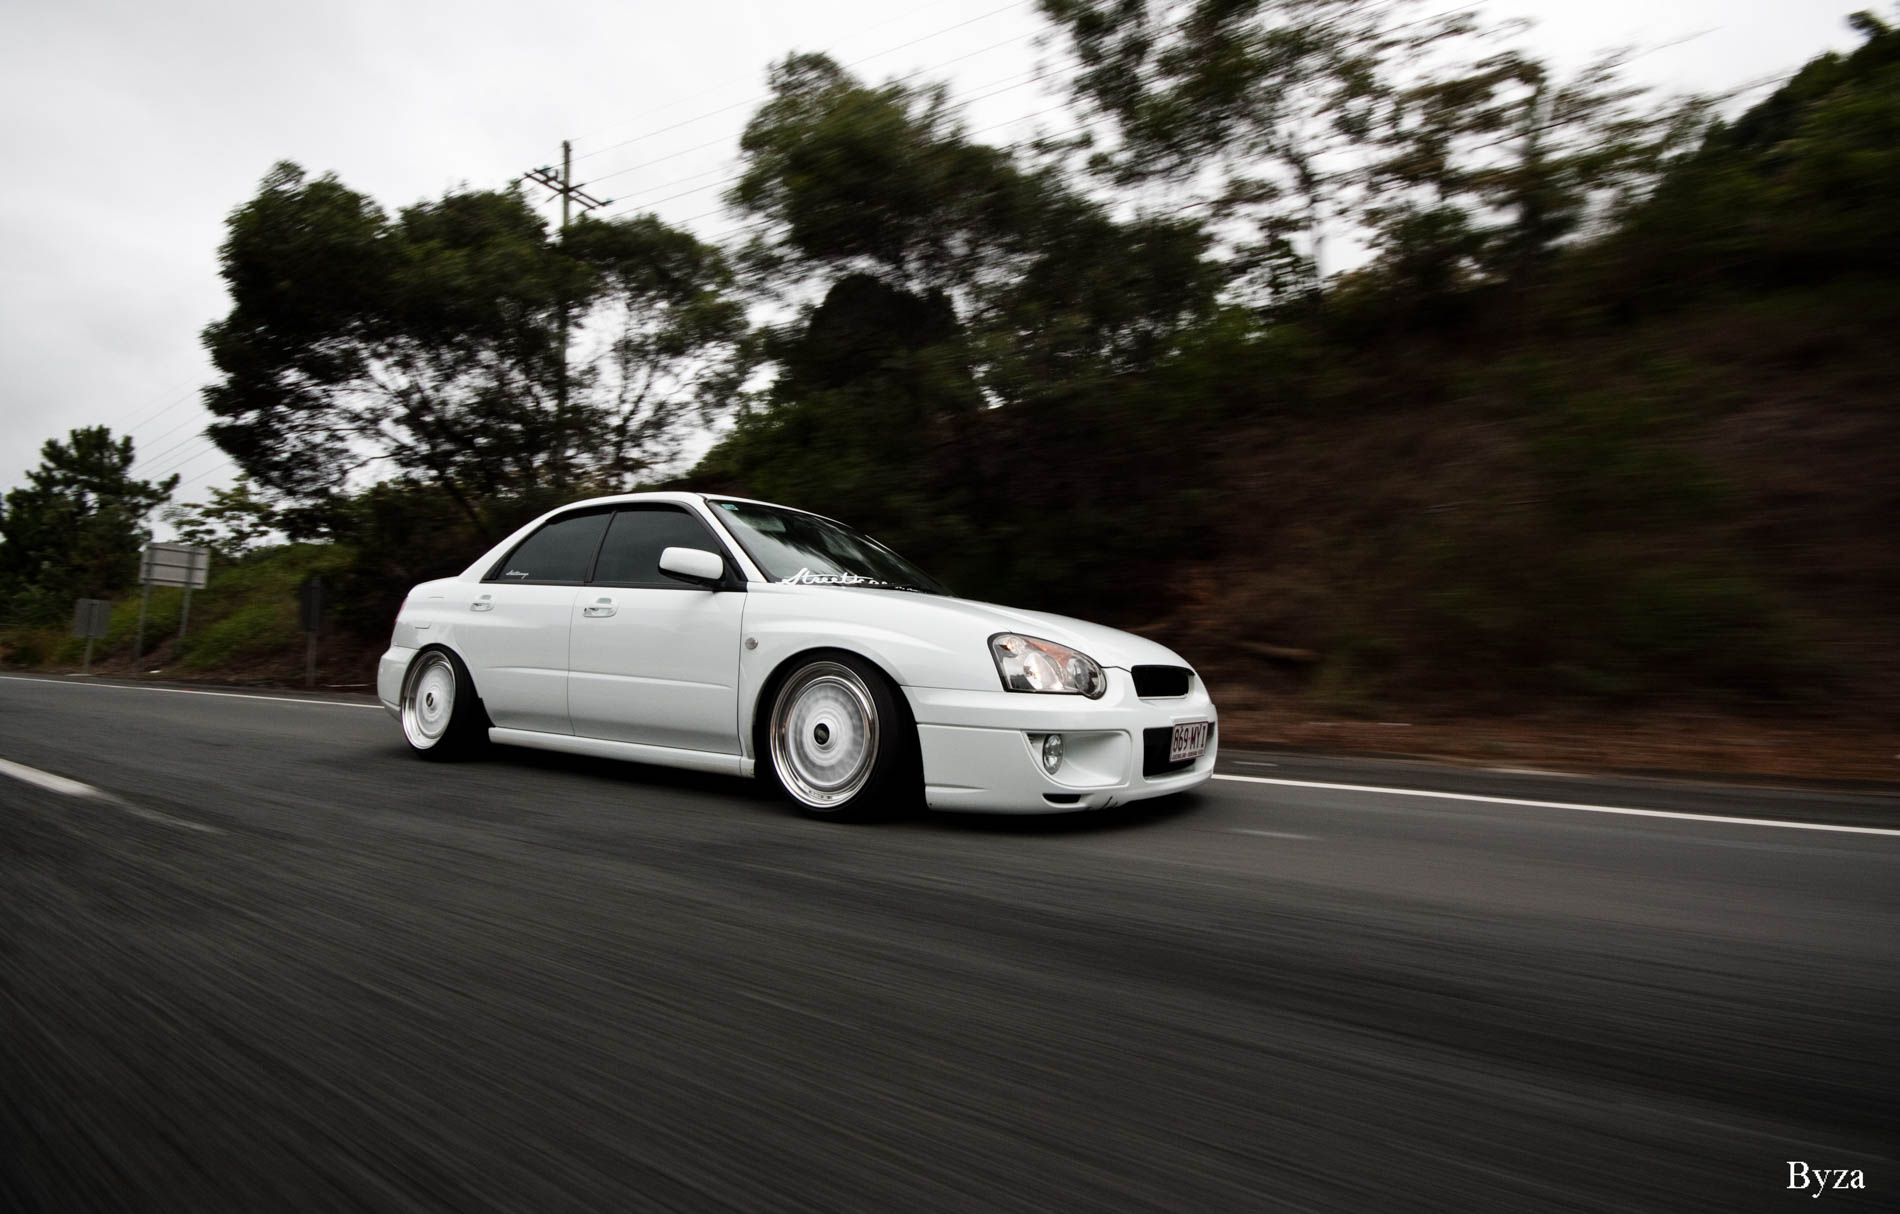 Alex's Albino Subie Fitted Fresh On BBS (0)